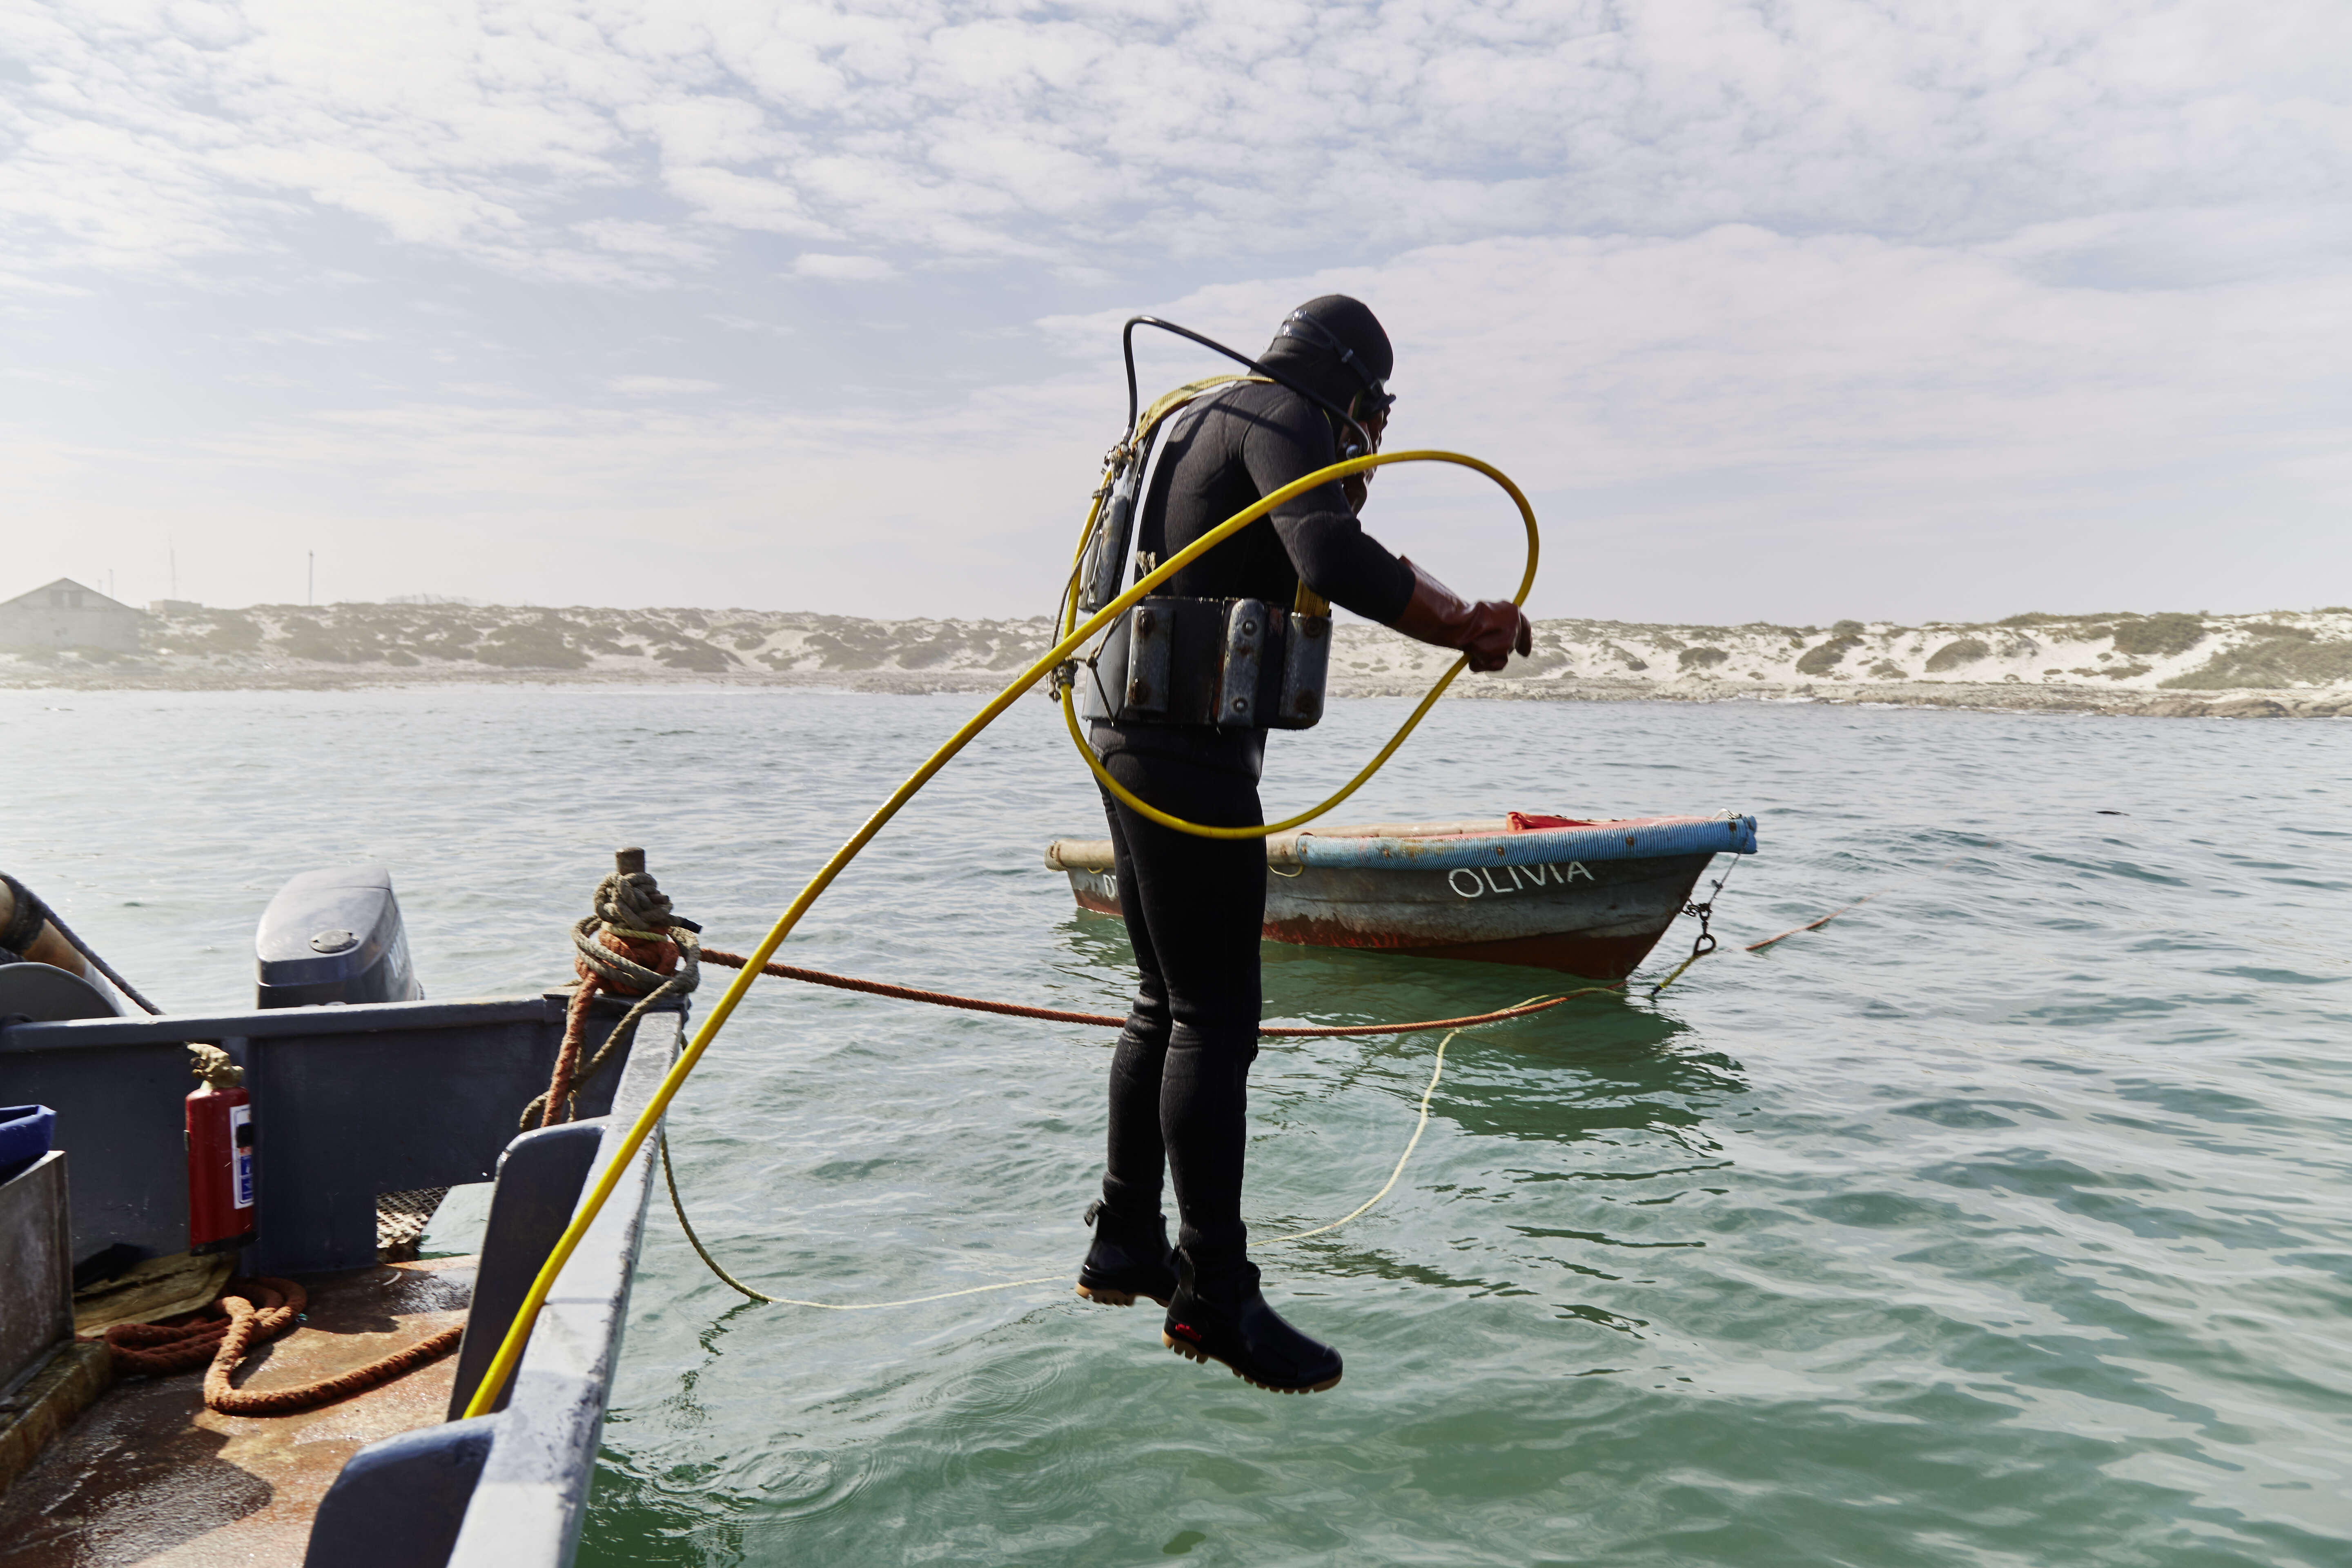 Diving for Ocean Diamonds on 'Safari' in South Africa